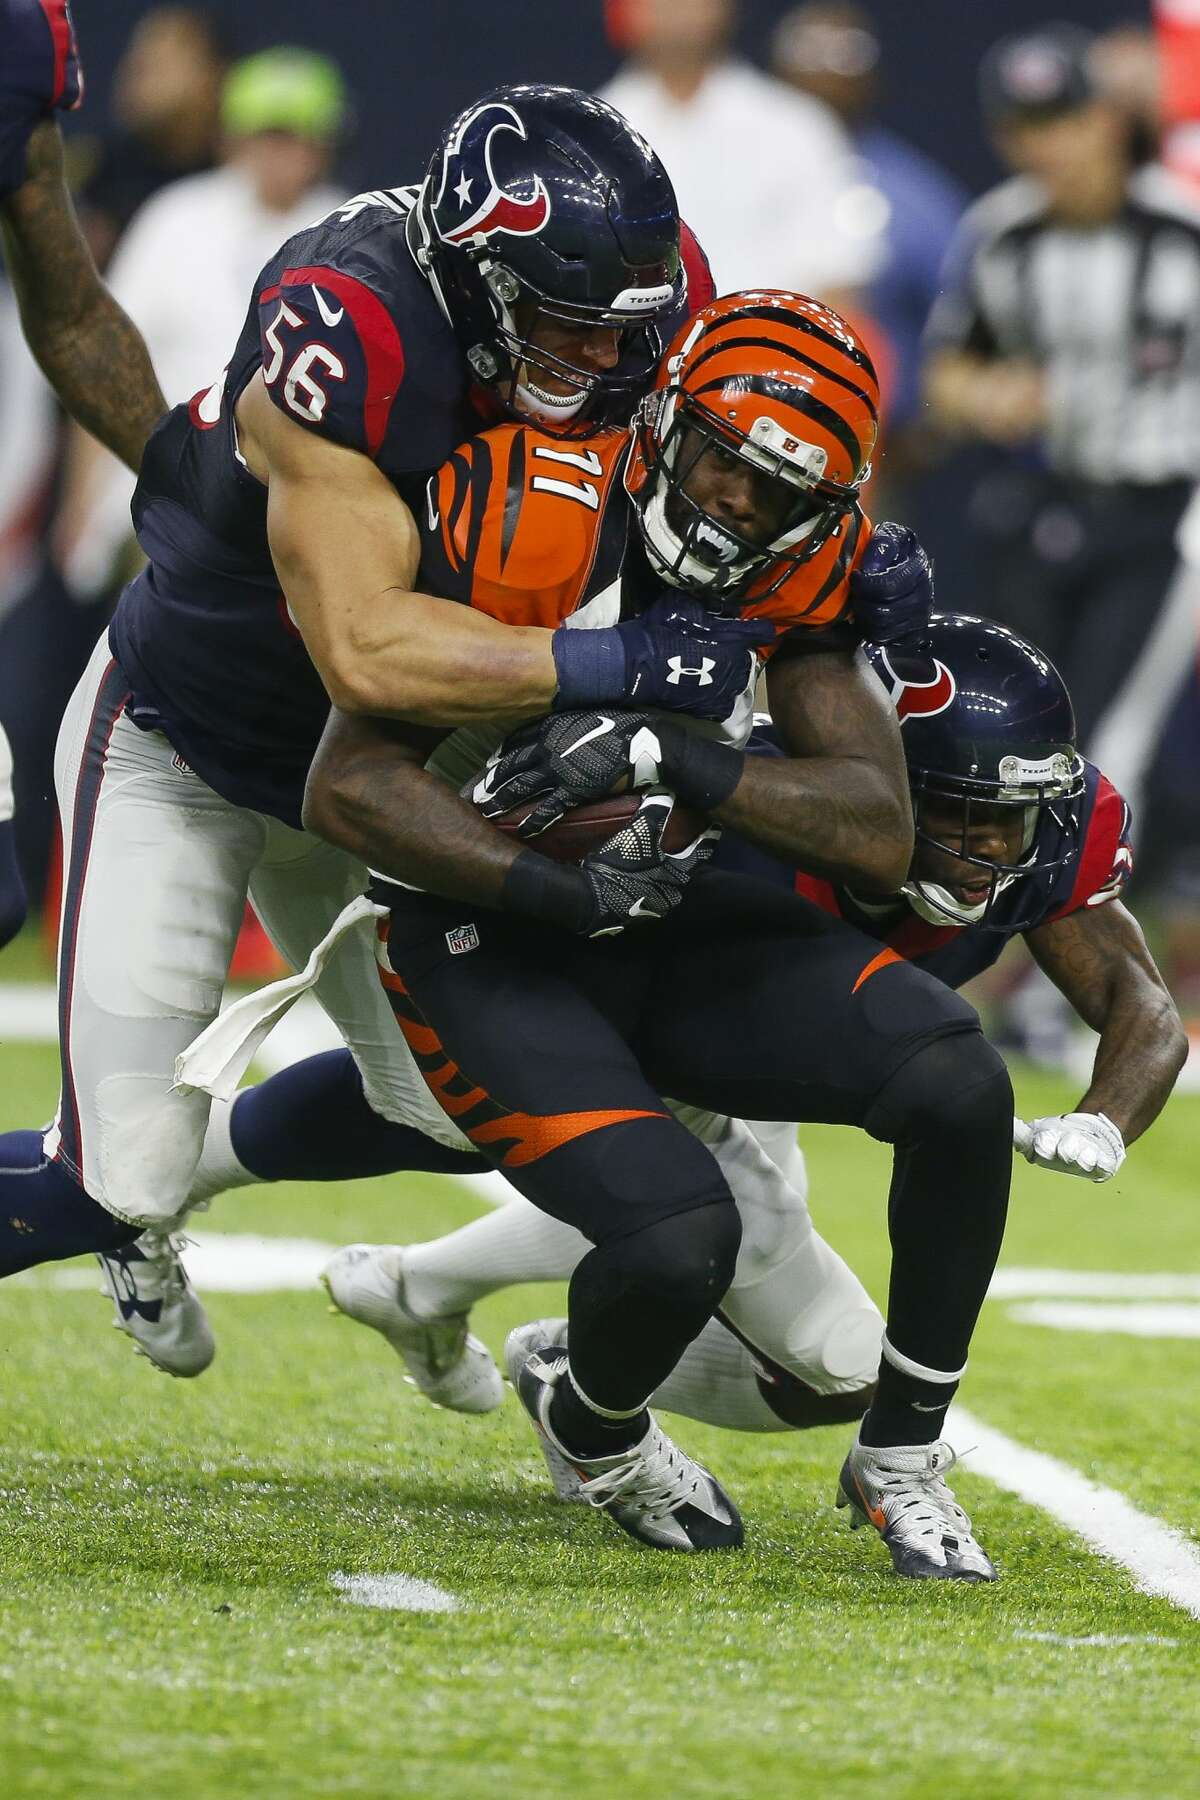 Houston Texans inside linebacker Brian Cushing (56) and cornerback Johnathan Joseph (24) tackle Cincinnati Bengals wide receiver Brandon LaFell (11) during the second quarter of an NFL football game at NRG Stadium on Saturday, Dec. 24, 2016, in Houston. ( Brett Coomer / Houston Chronicle )